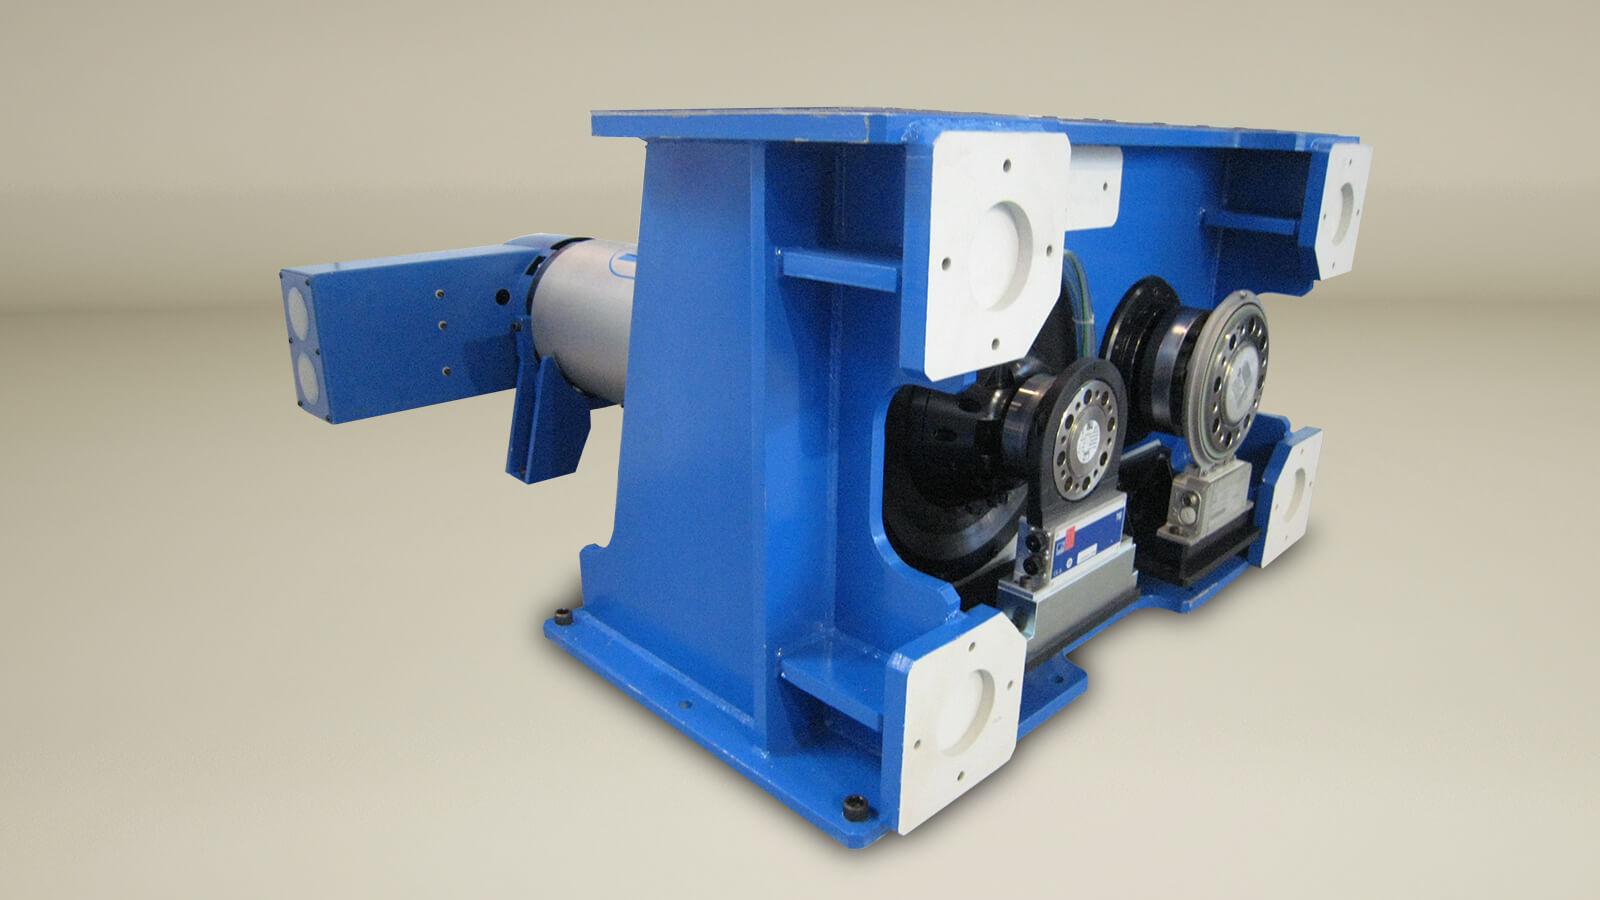 a new range of dynamometers combining high torque at low speed and constant power at high speed